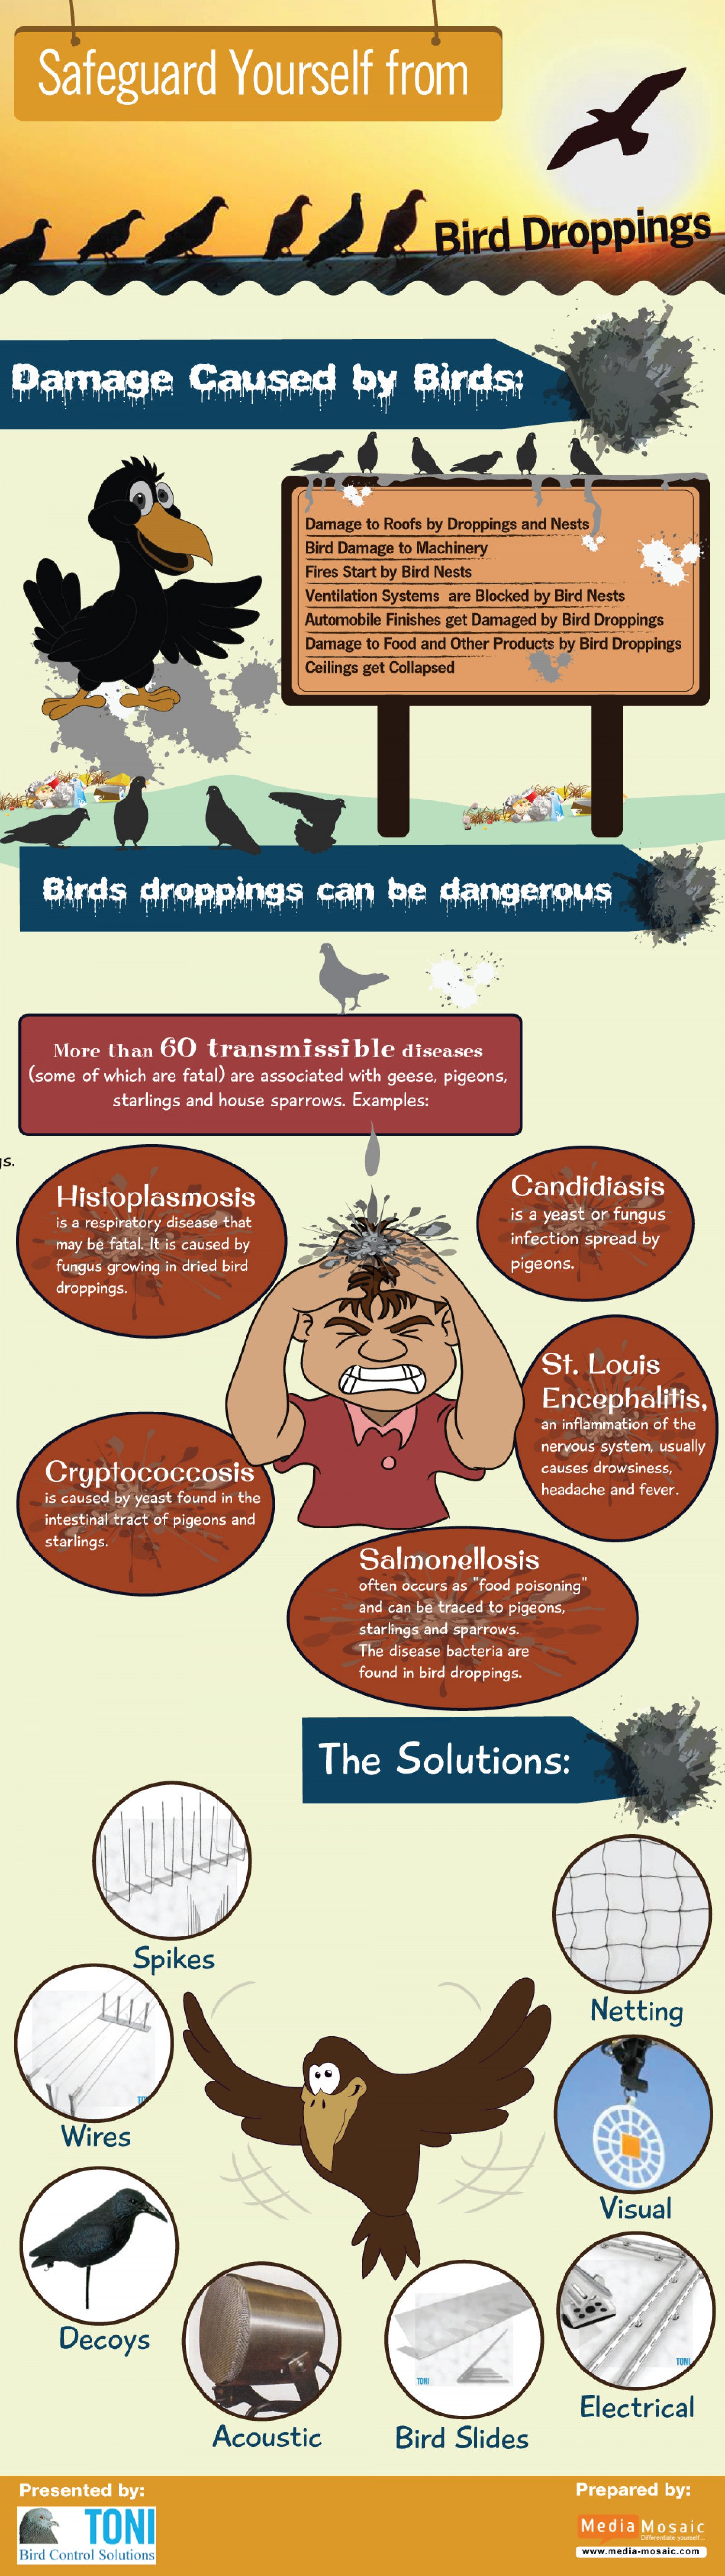 Safeguard Yourself From Bird Droppings Infographic